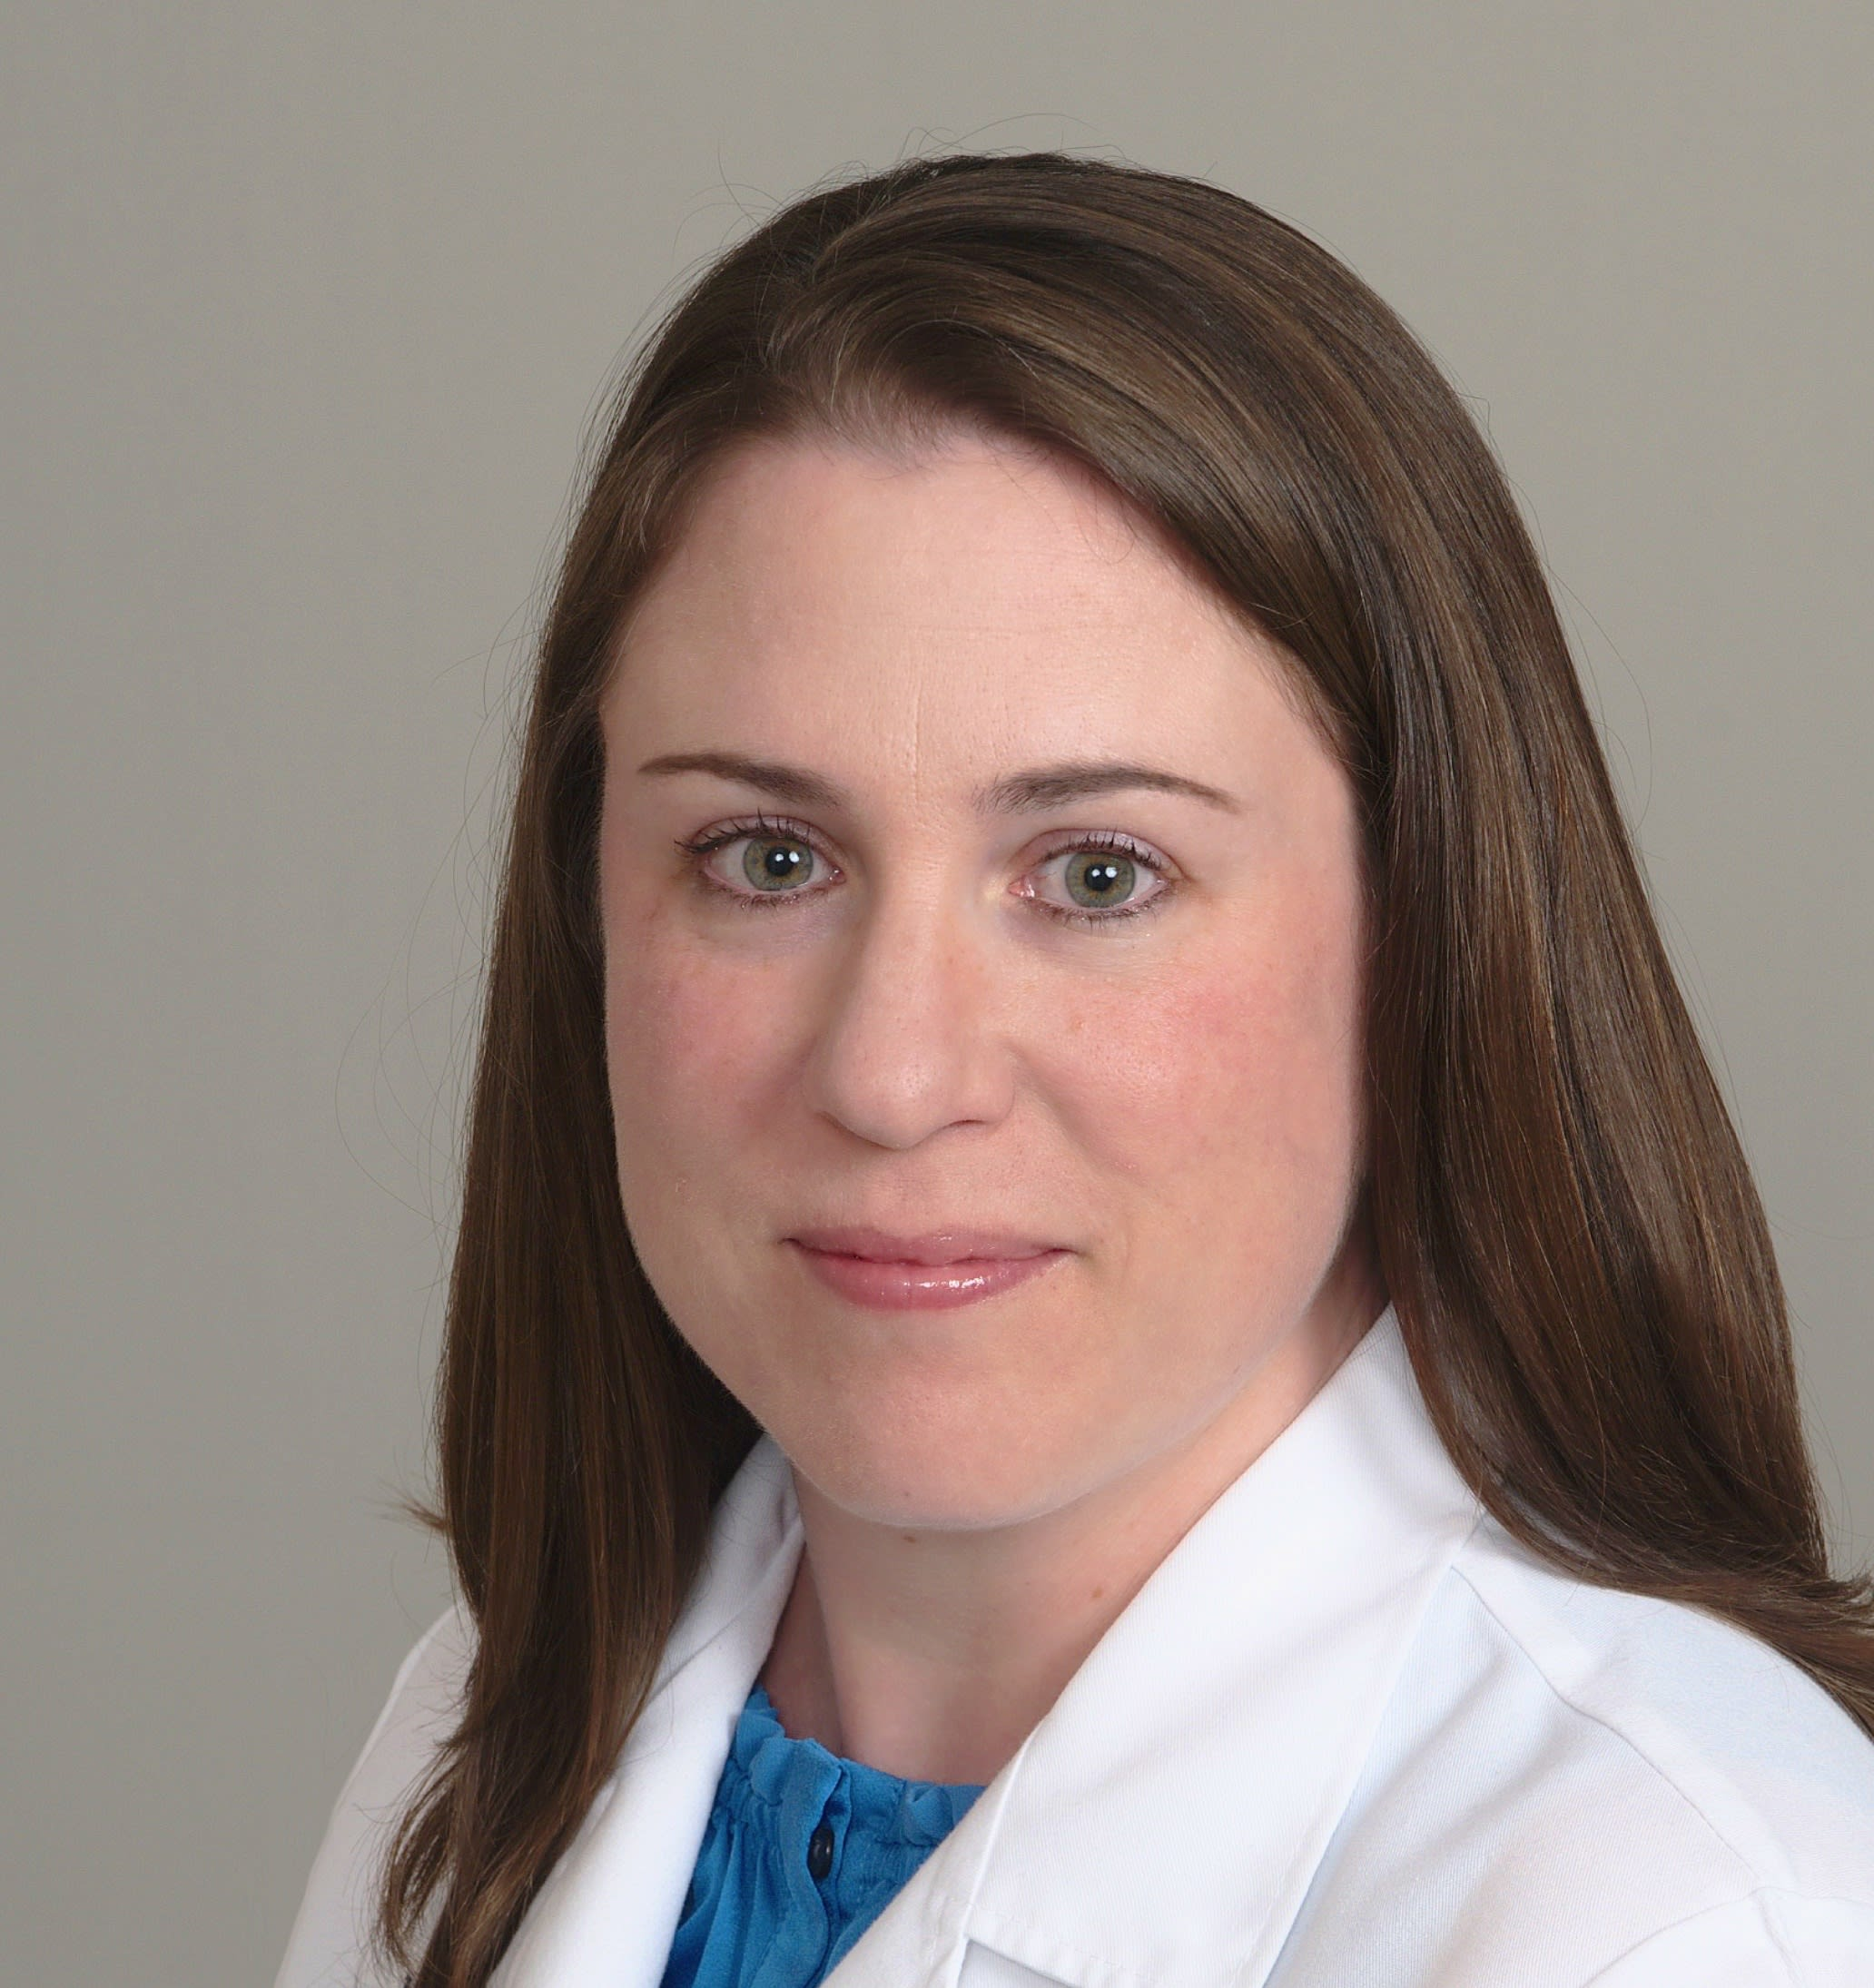 Dr. Mary M South MD